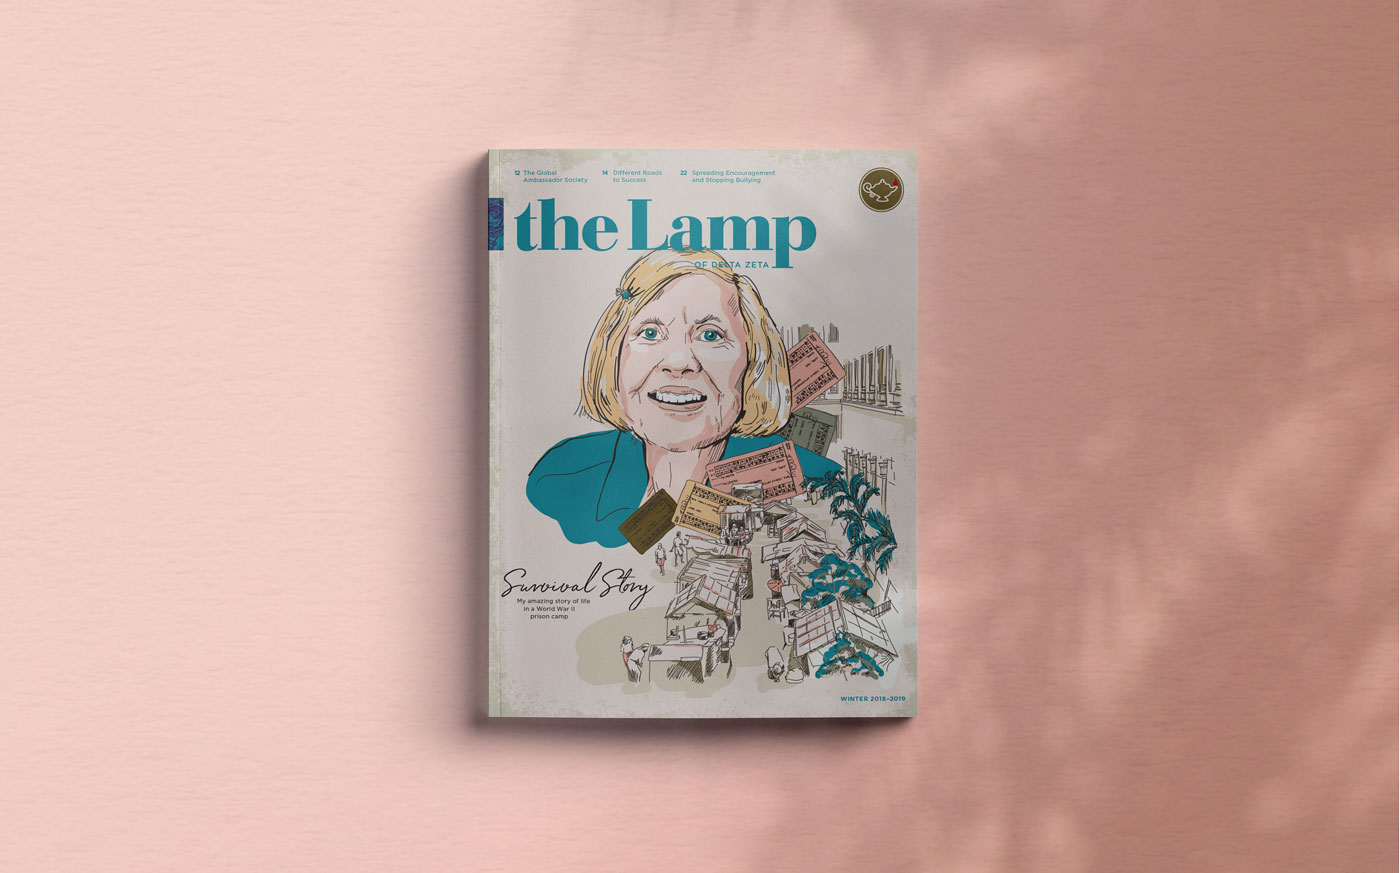 mockup of The Lamp cover illustration